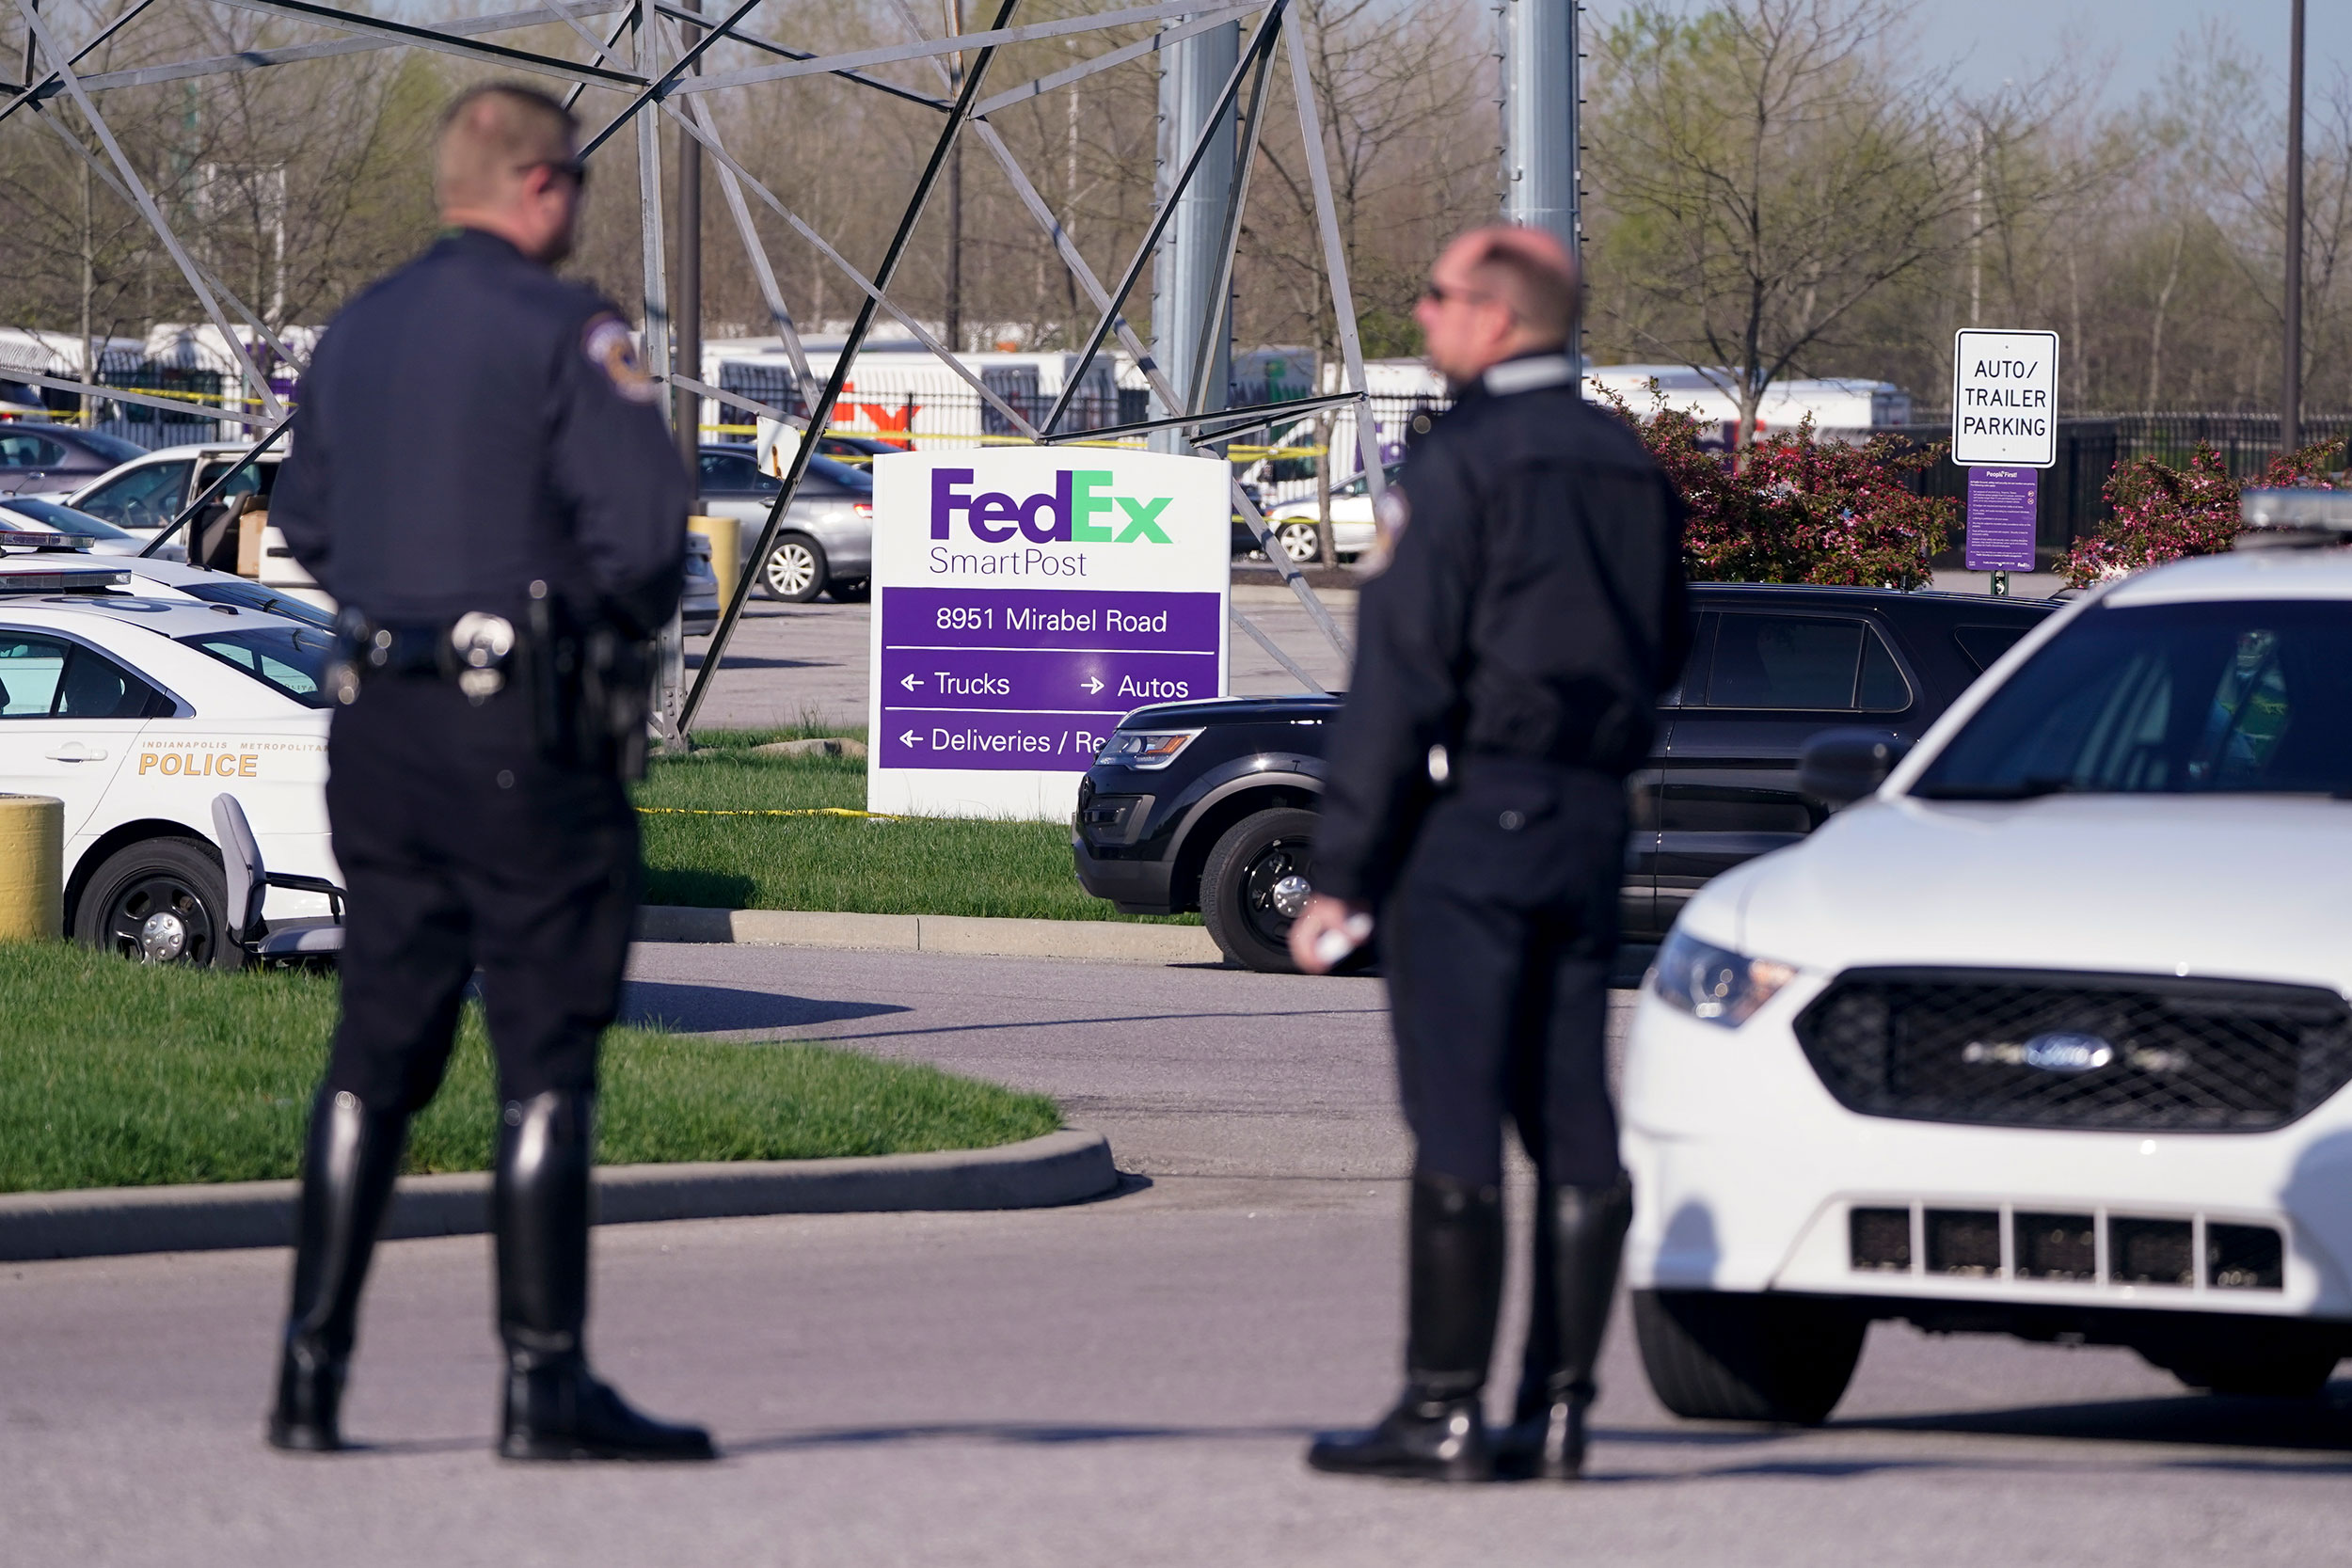 Indianapolis was already seeing a rising number of homicides when a gunman killed 8 at a FedEx facility